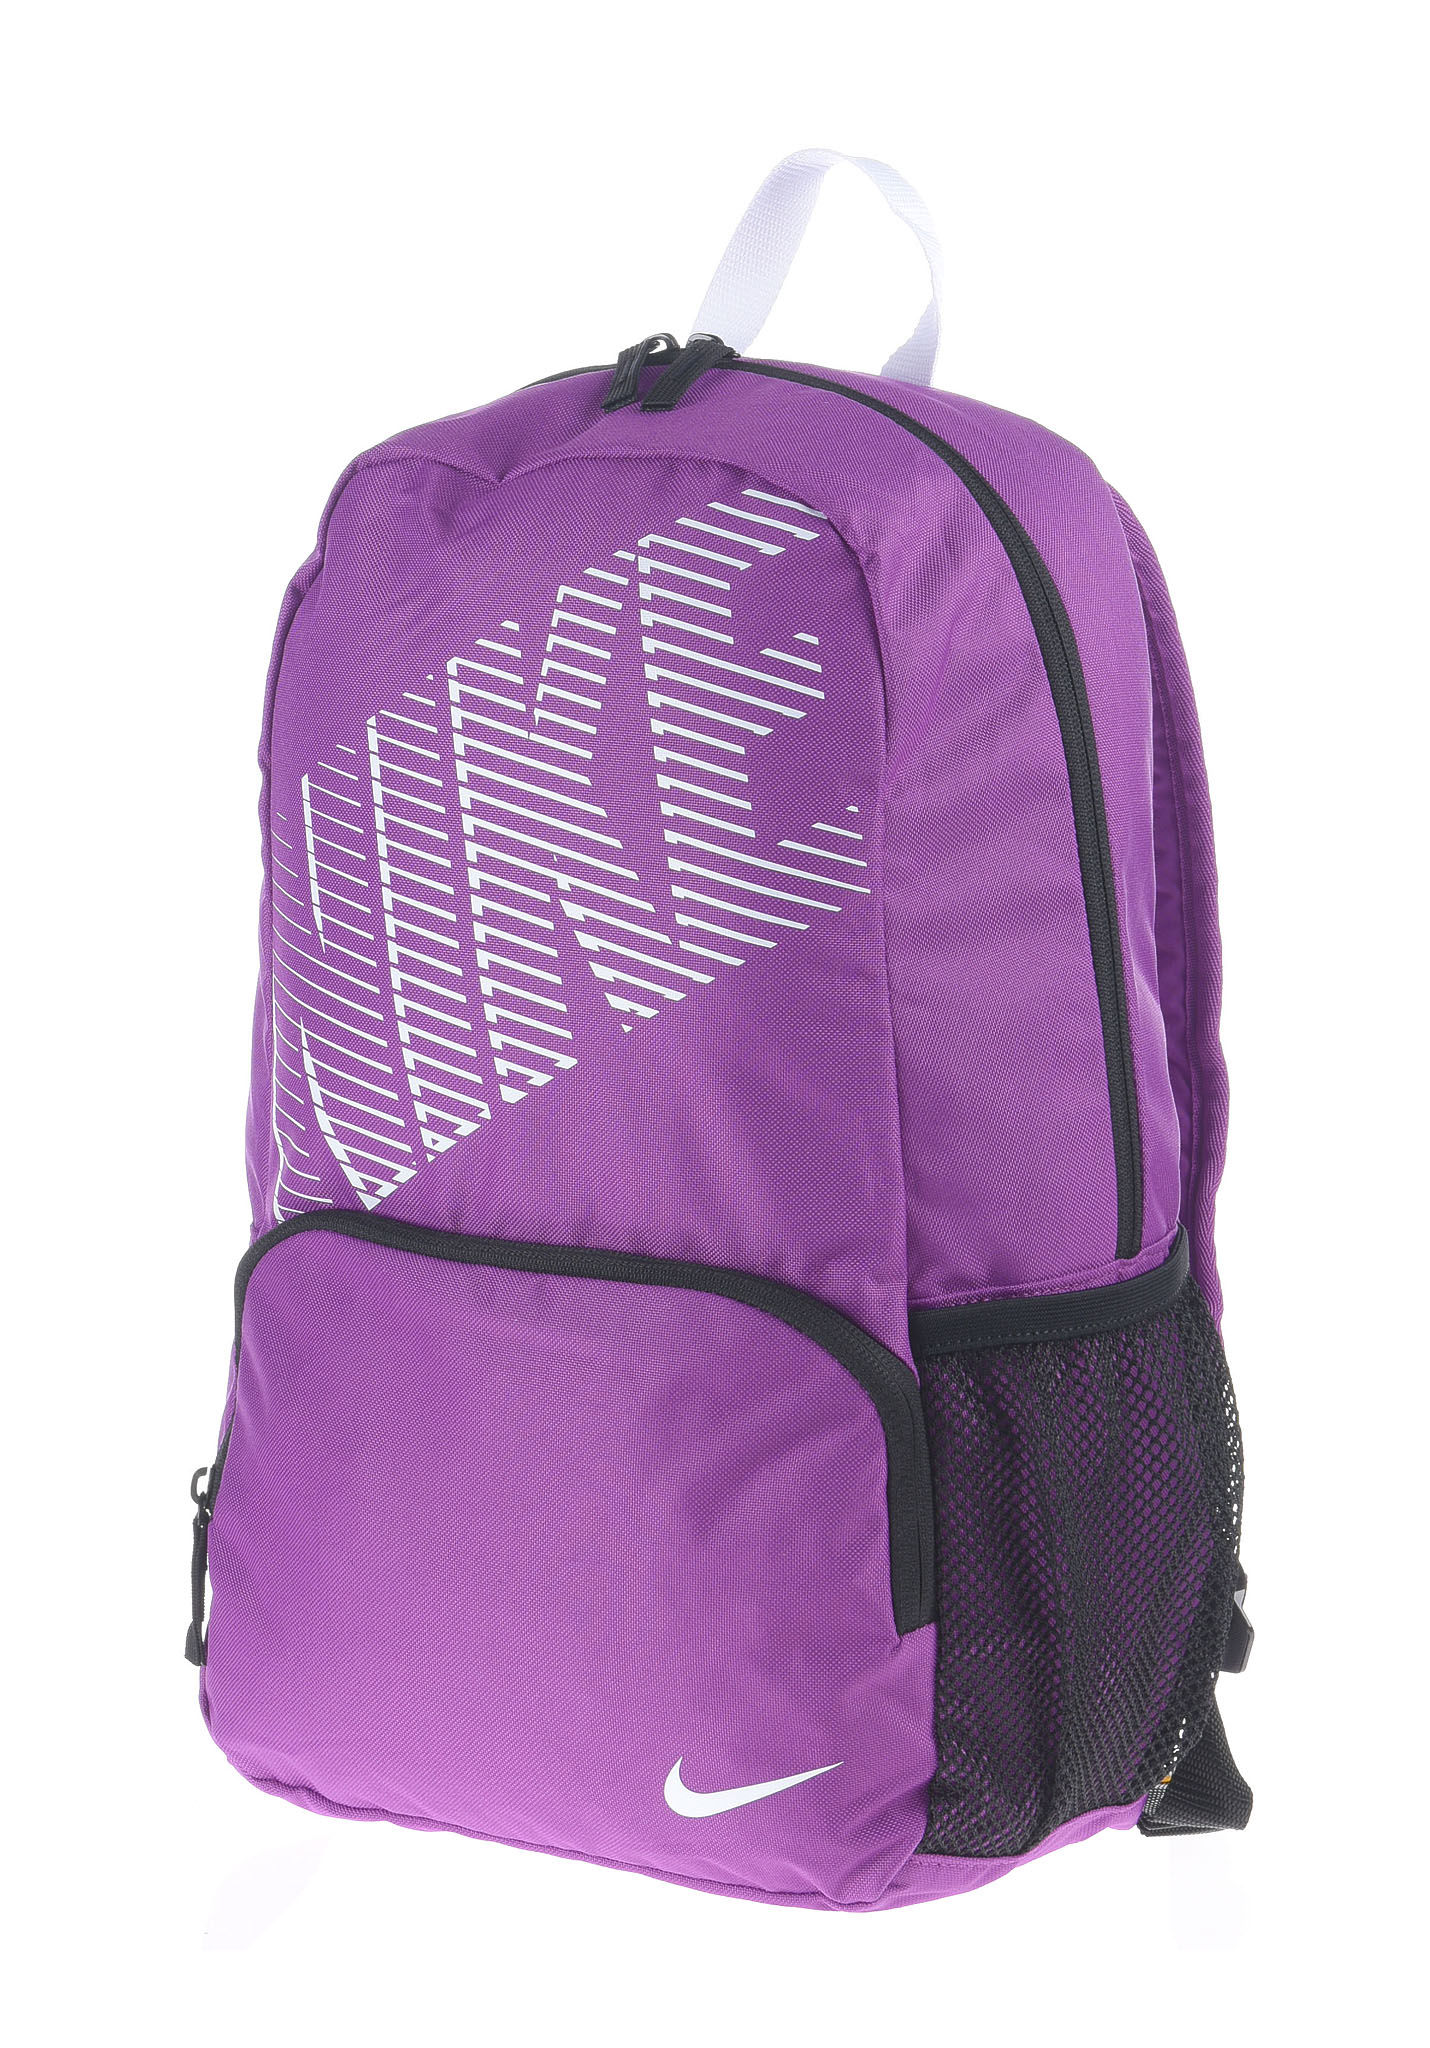 ... Lyst - Nike Gyakusou Backpack (purple) in Green for Men the best  attitude eac21  Nike Kids ... 6e0a304aac